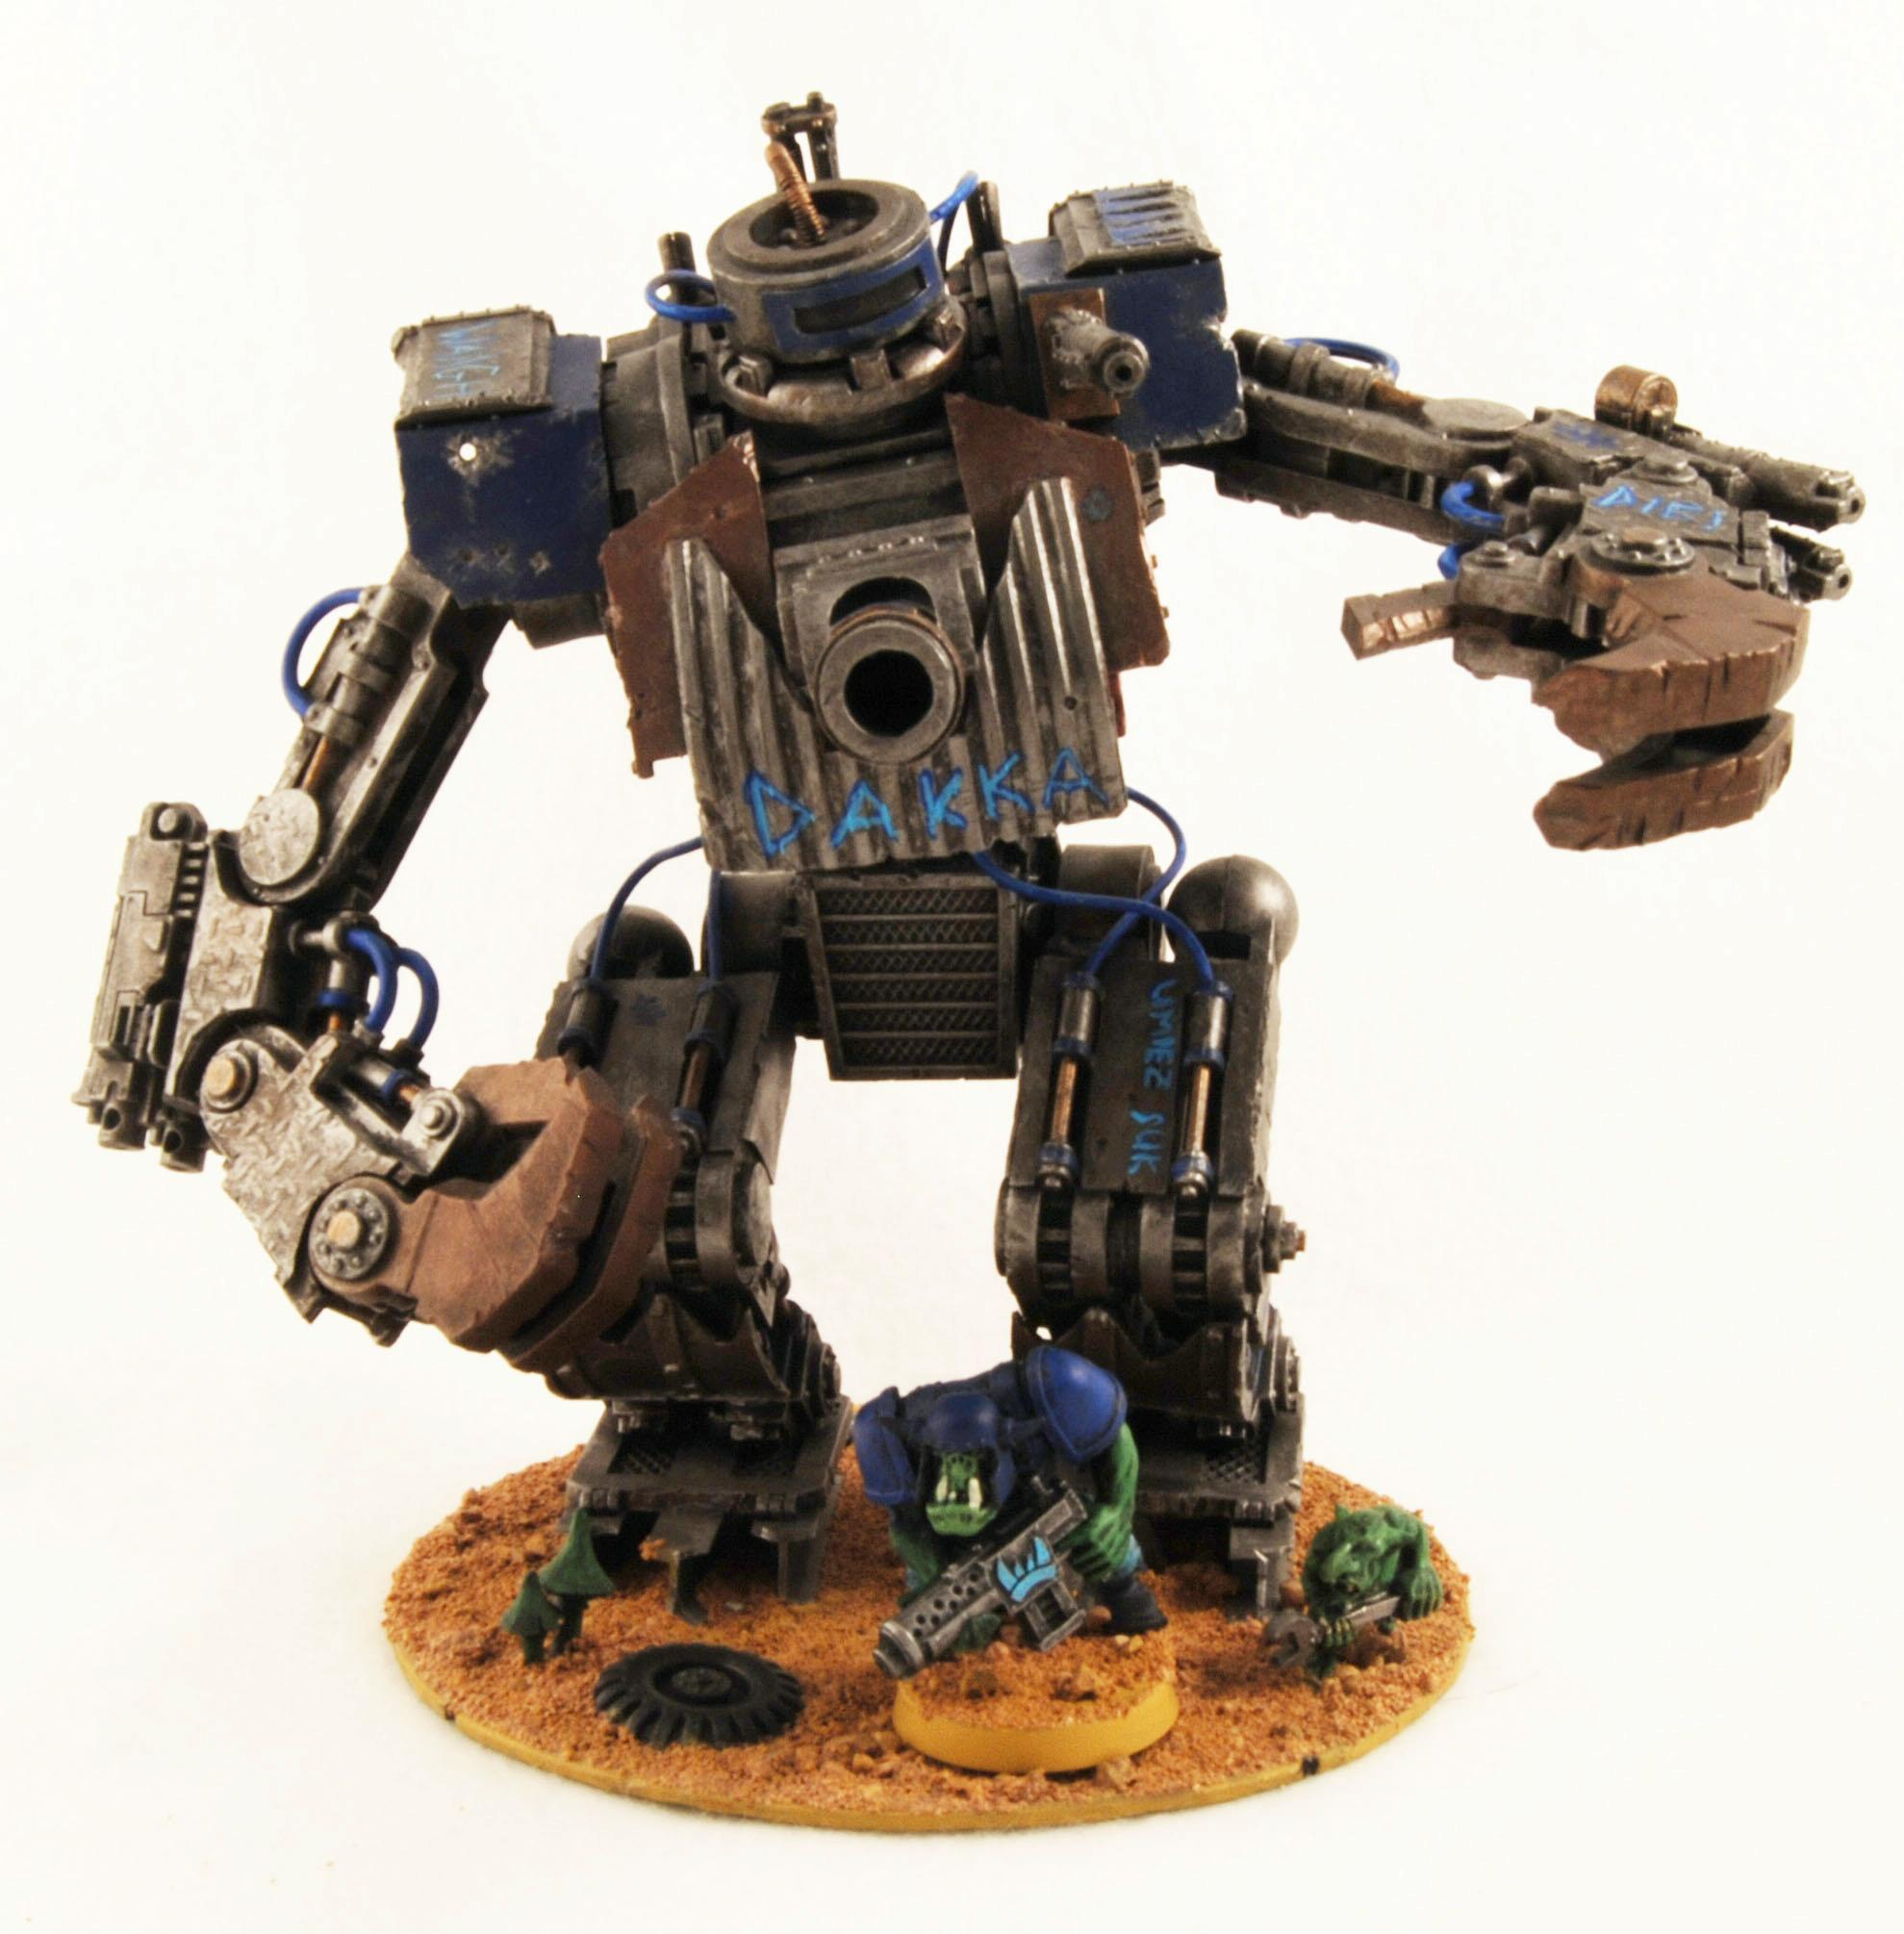 Apocalypse, Awesome, Battlewagon, Chaos, Conversion, Cool, Deathskulls, Defiler, Looted, Looted Wagon, Orks, Plasticard, Scratch Build, Stompa, Waaagh, Warhammer 40,000